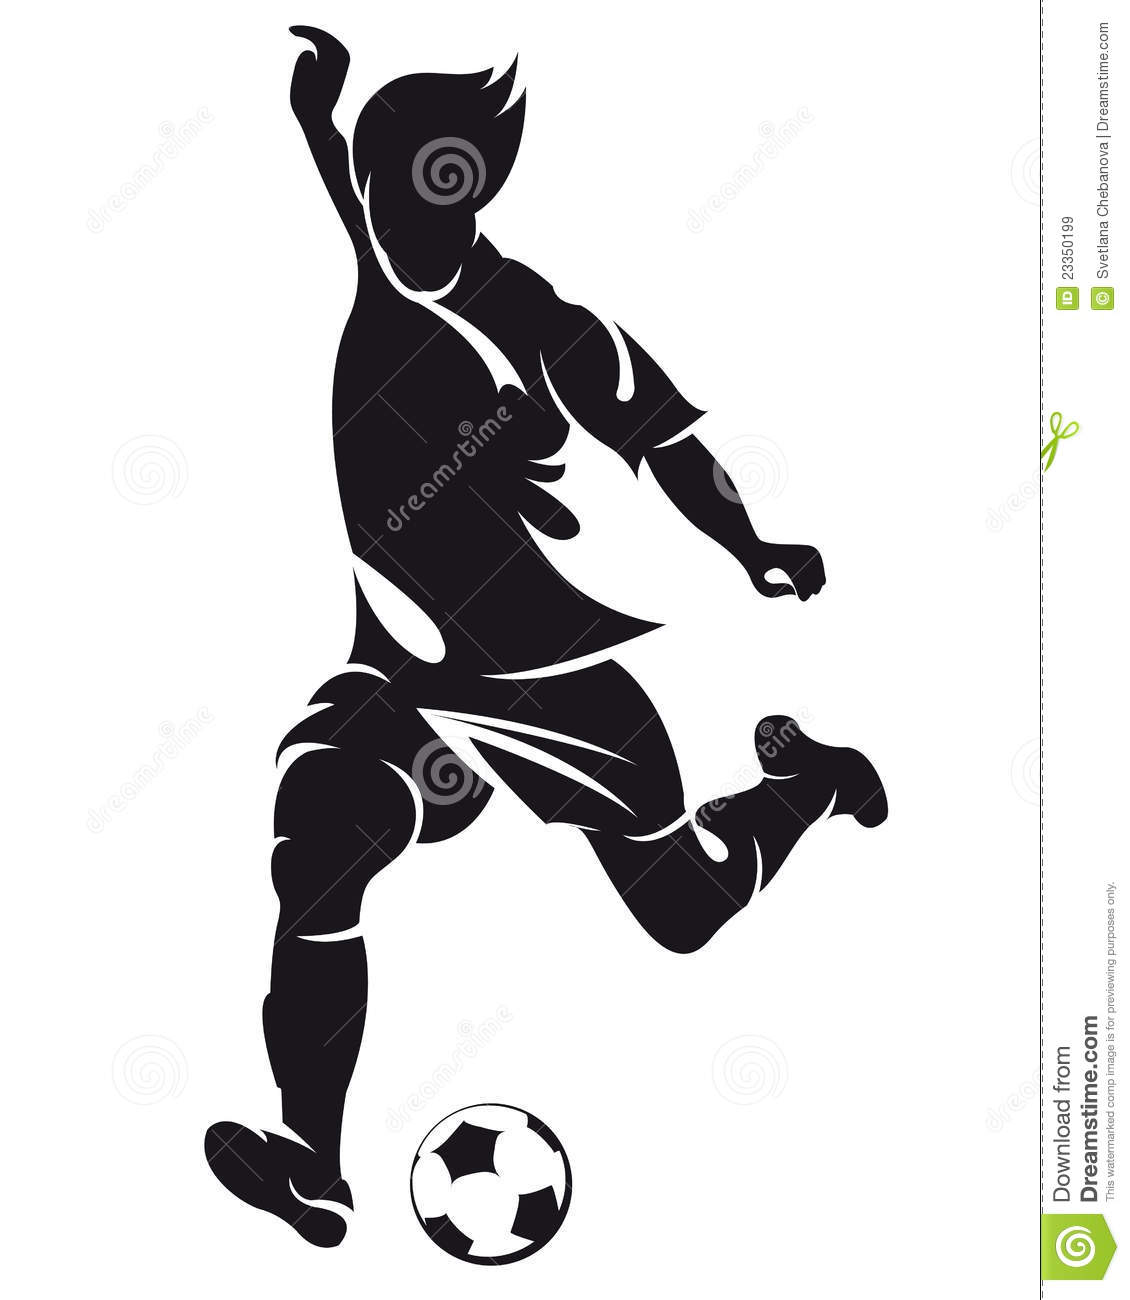 Vector Football (soccer) Player Silhouette Royalty Free Stock ...